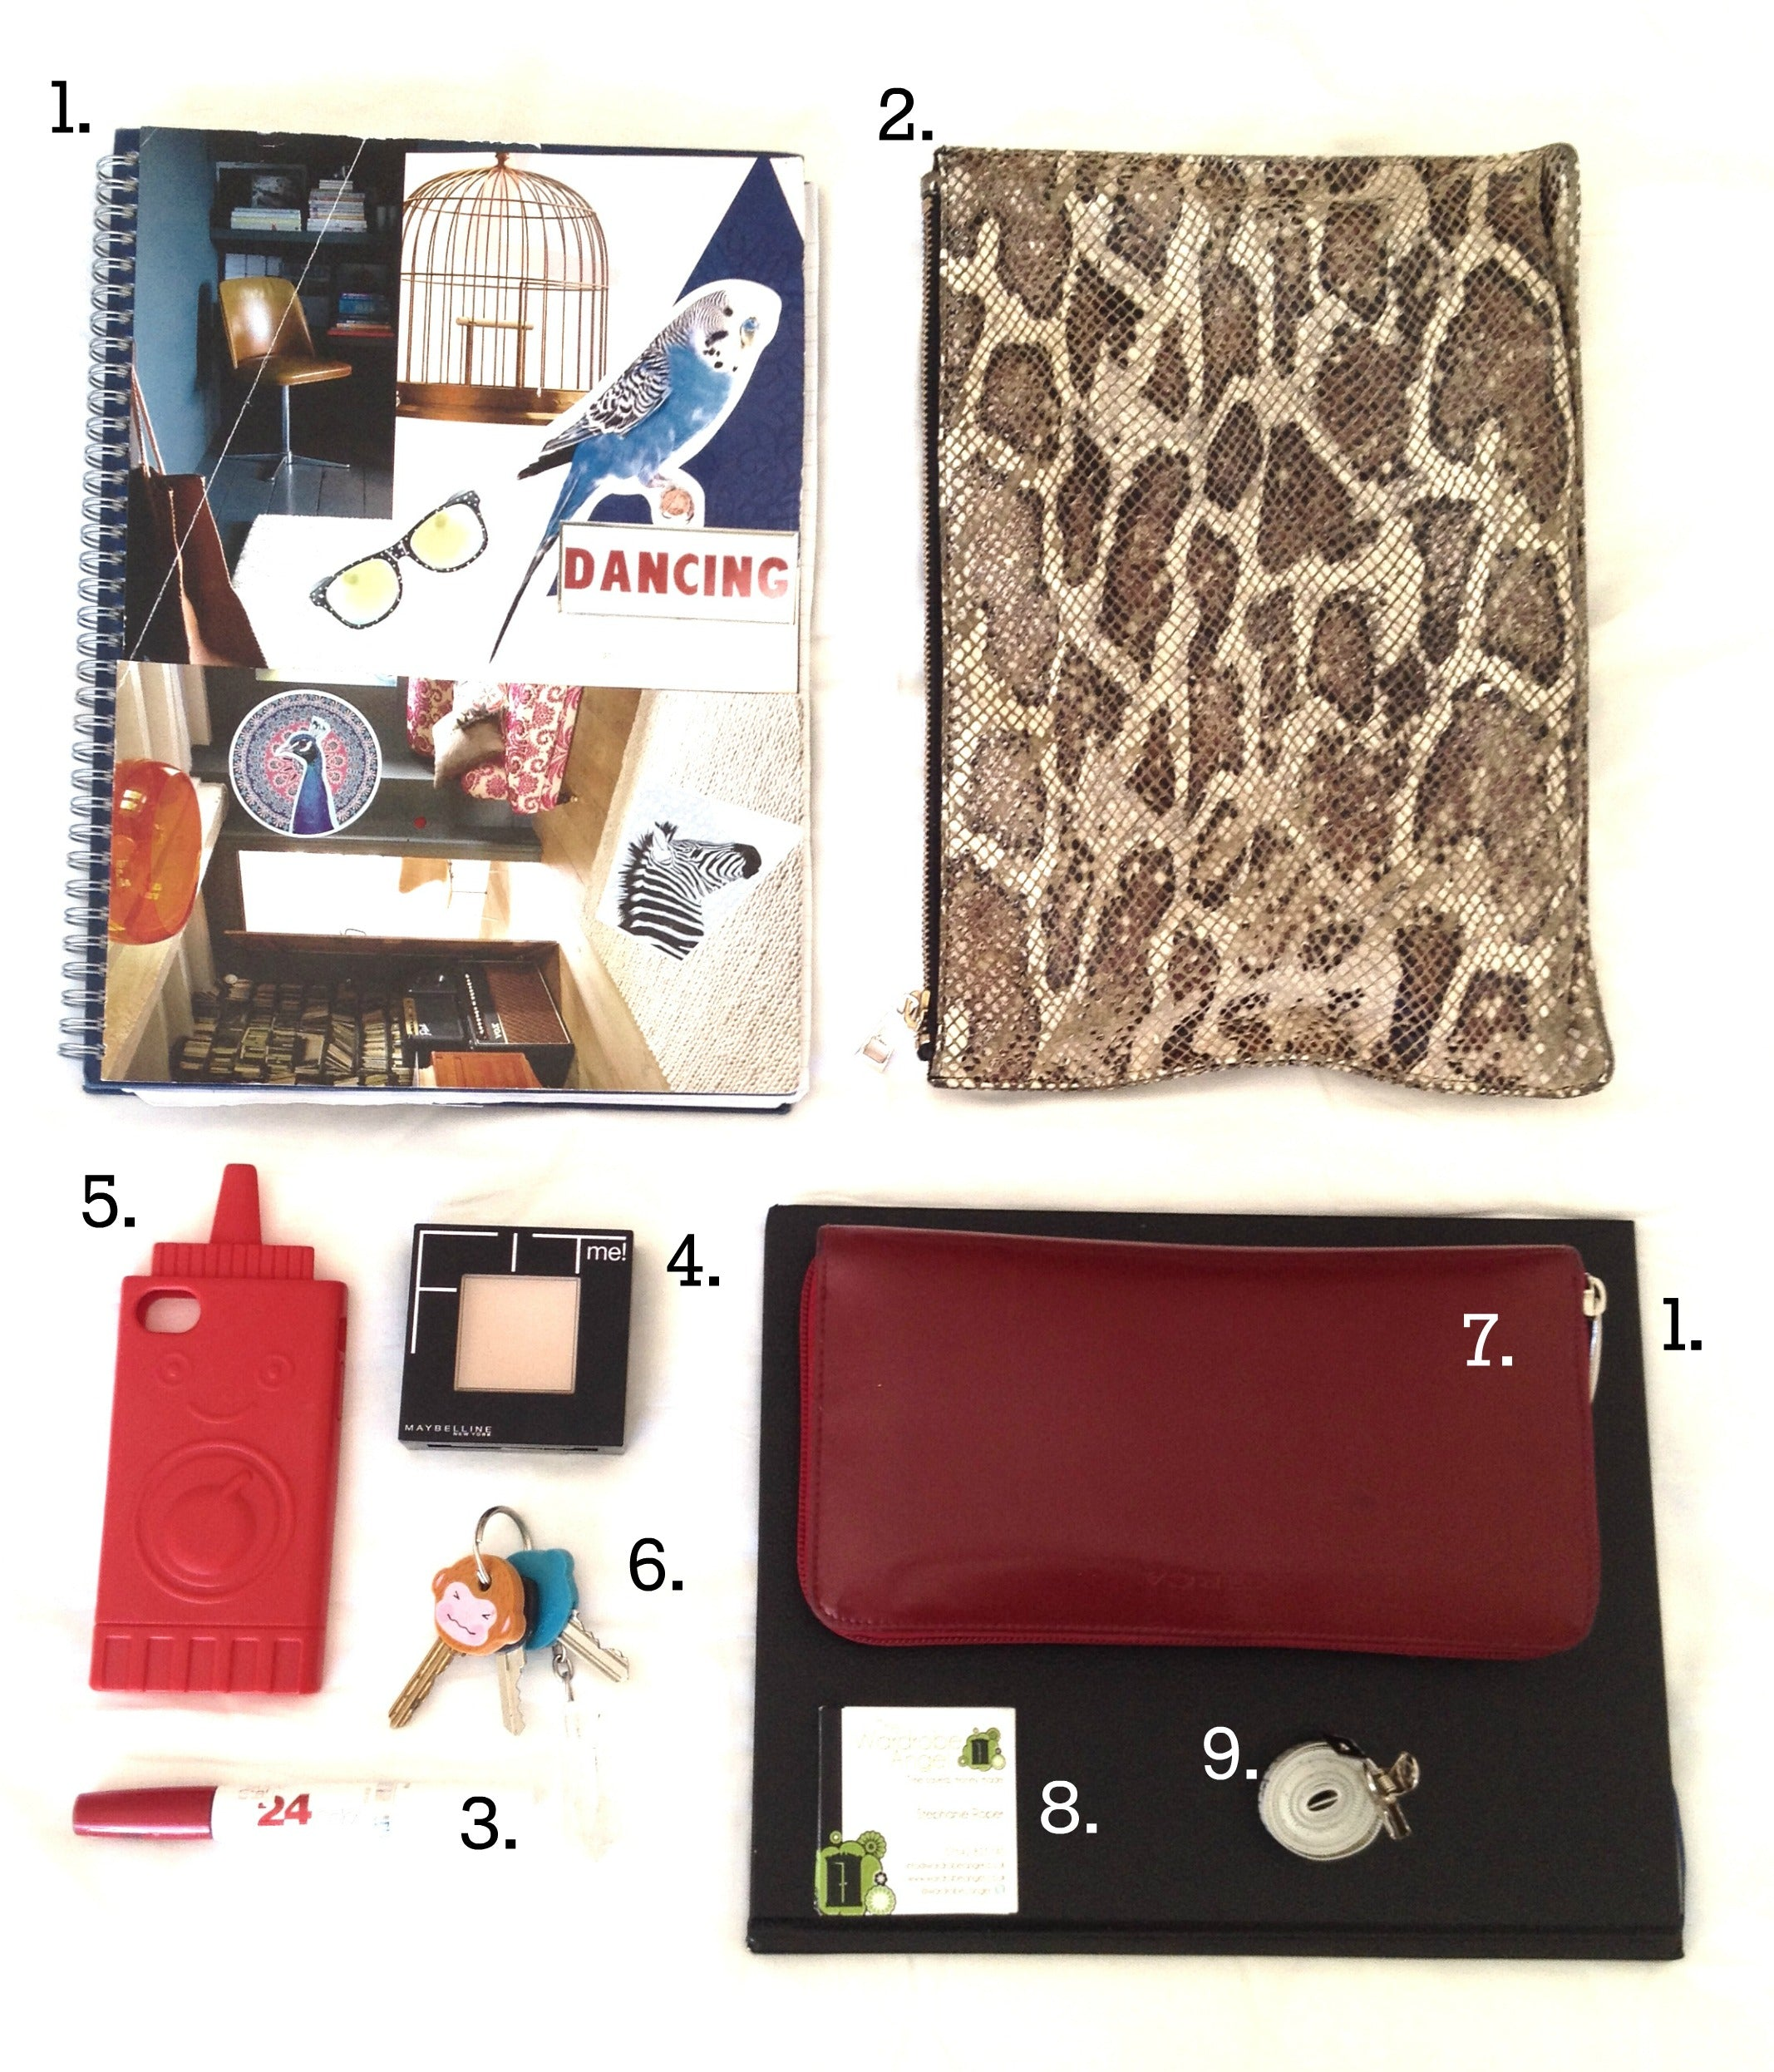 The Wardrobe angel handbag contents